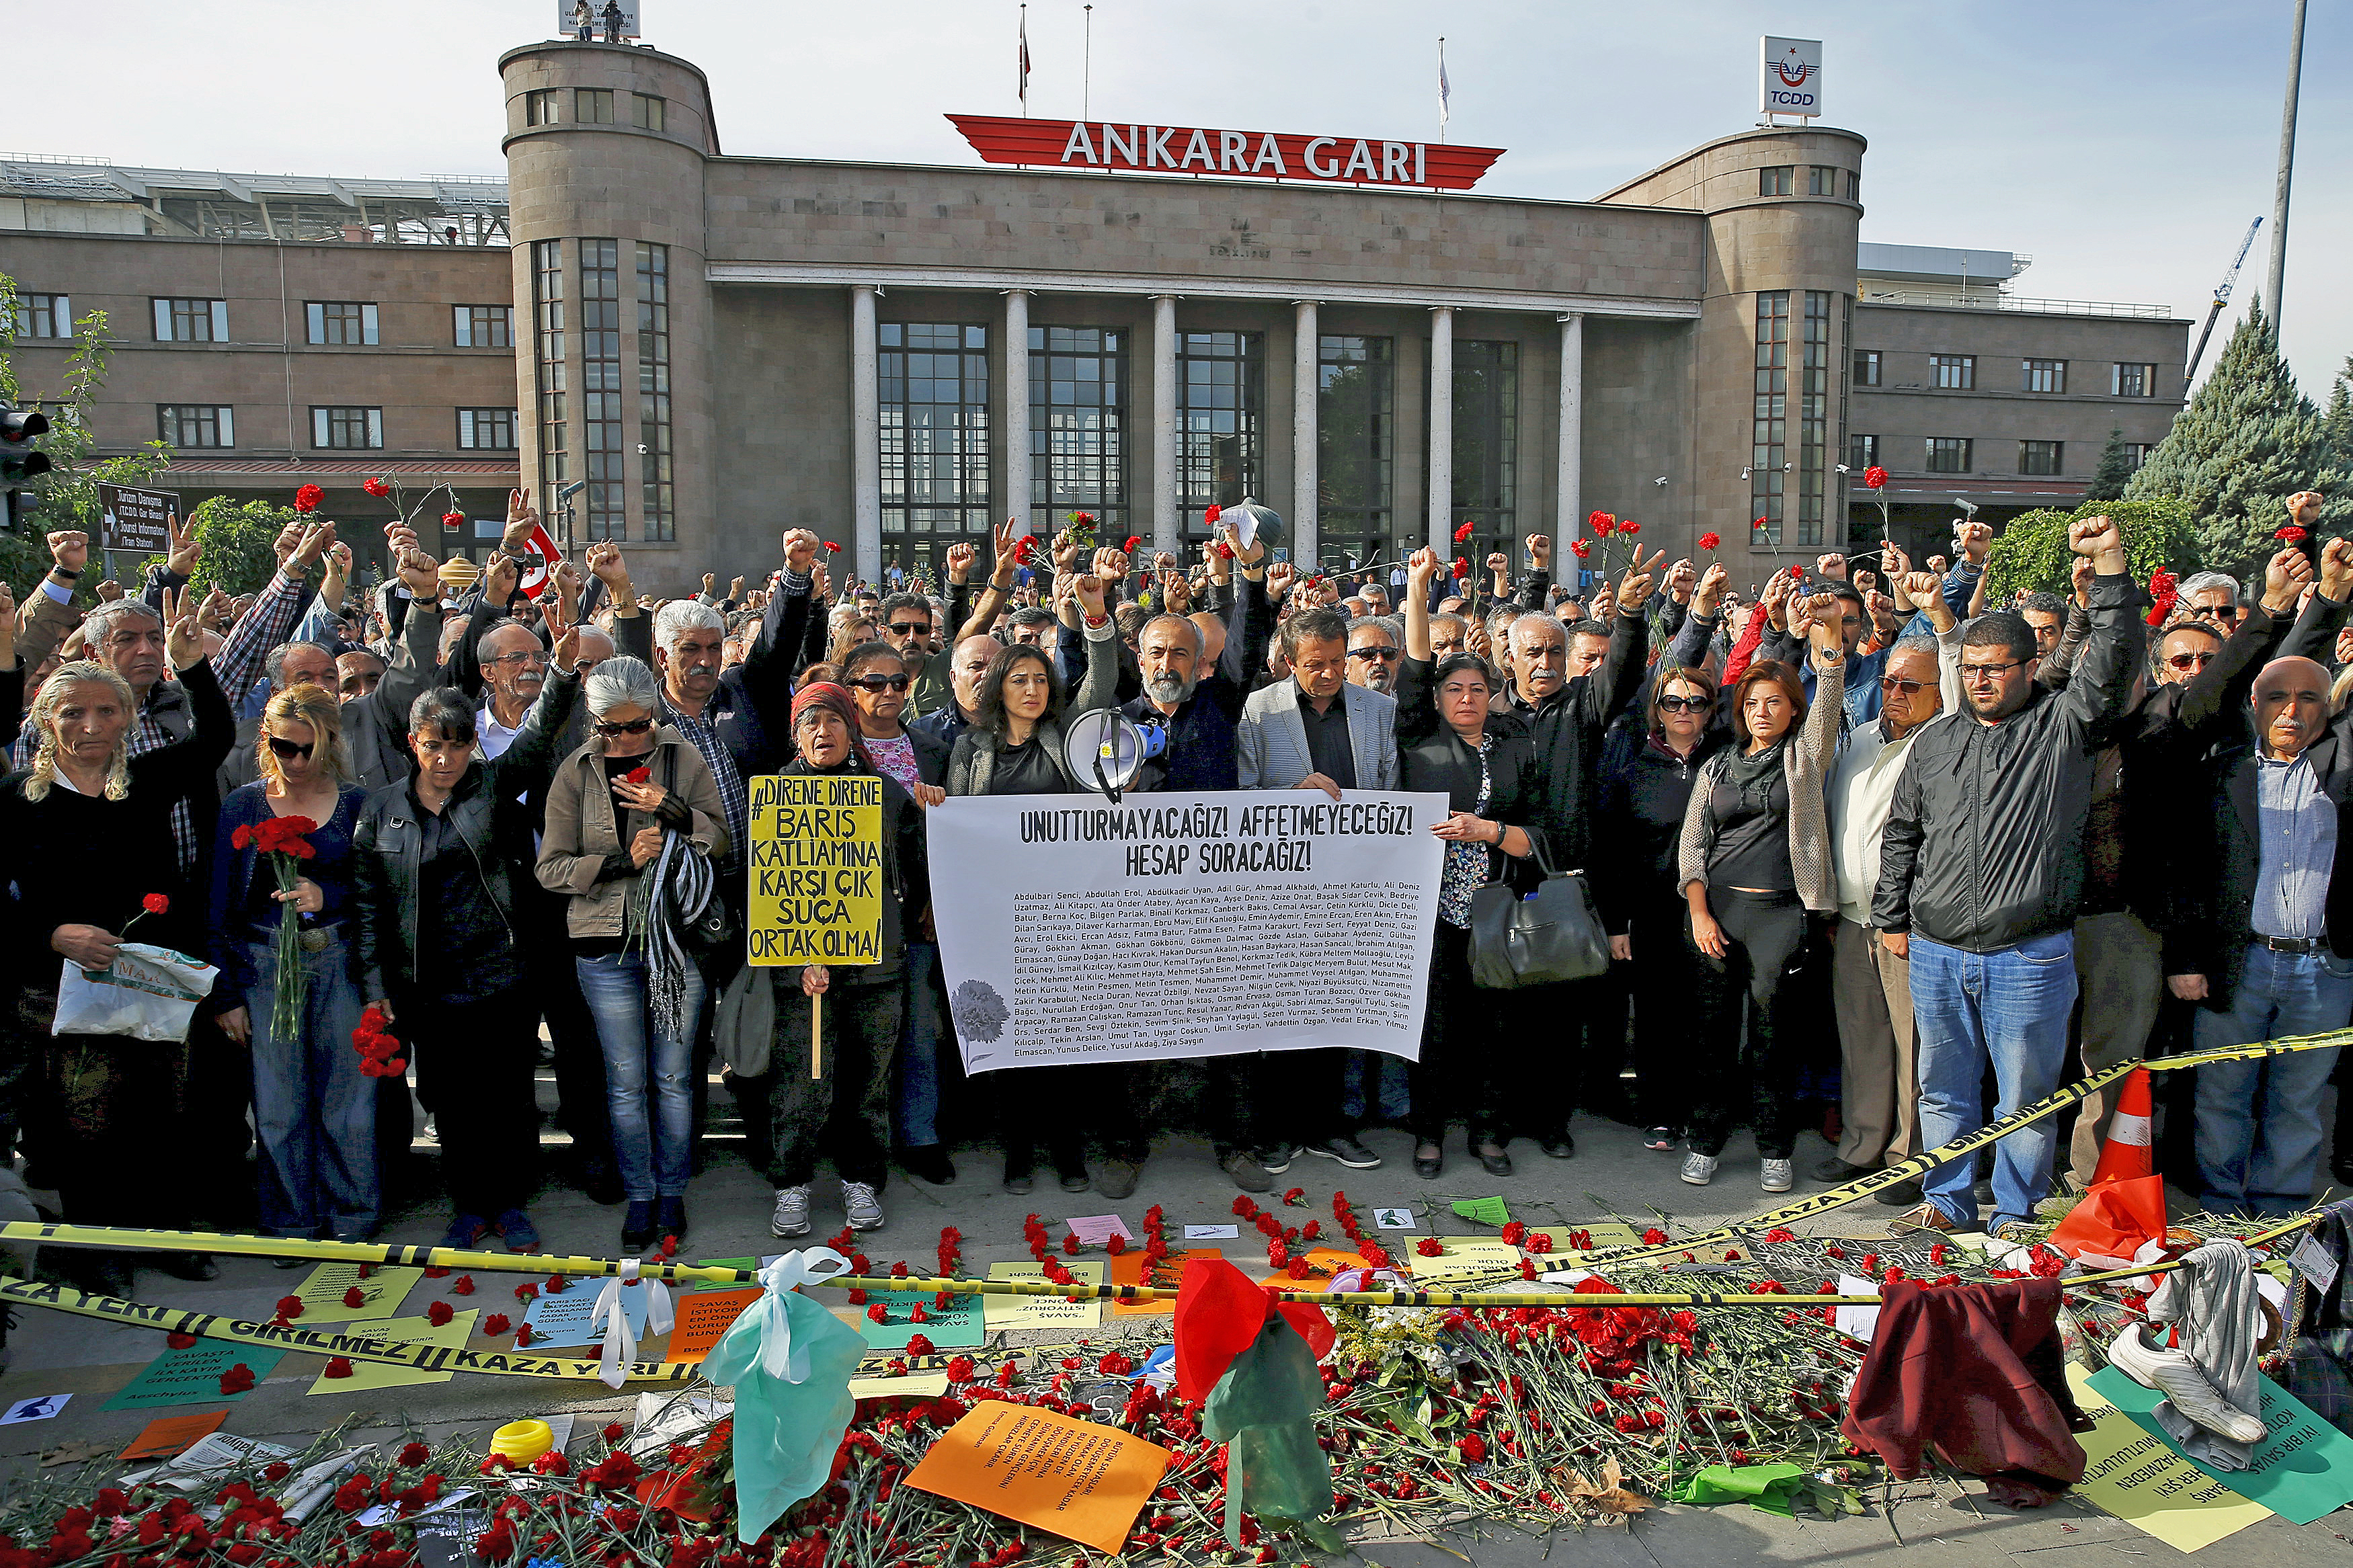 People attend a commemoration for the victims of the October 10 bombings in Ankara, Turkey, Oct. 17, 2015.